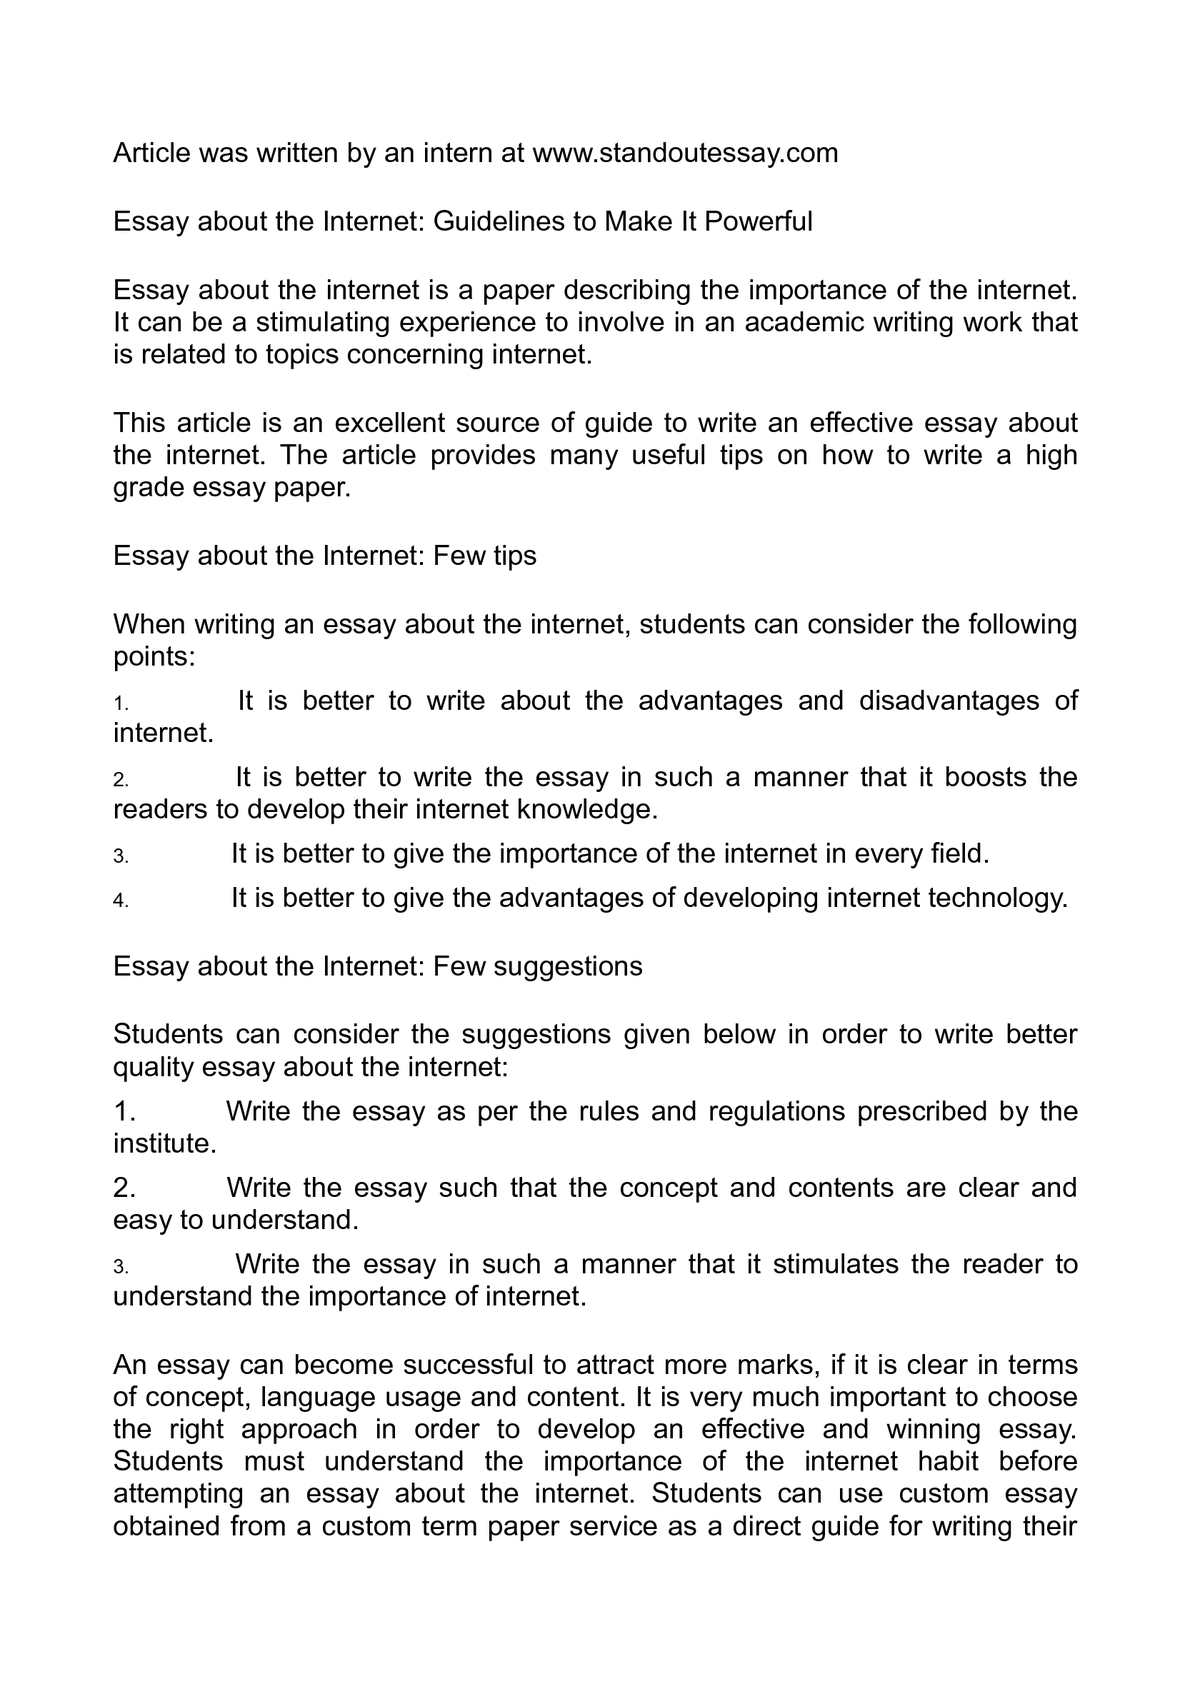 007 Internet Essay P1 Wondrous Privacy Introduction Censorship Topics Chatting In Urdu Full